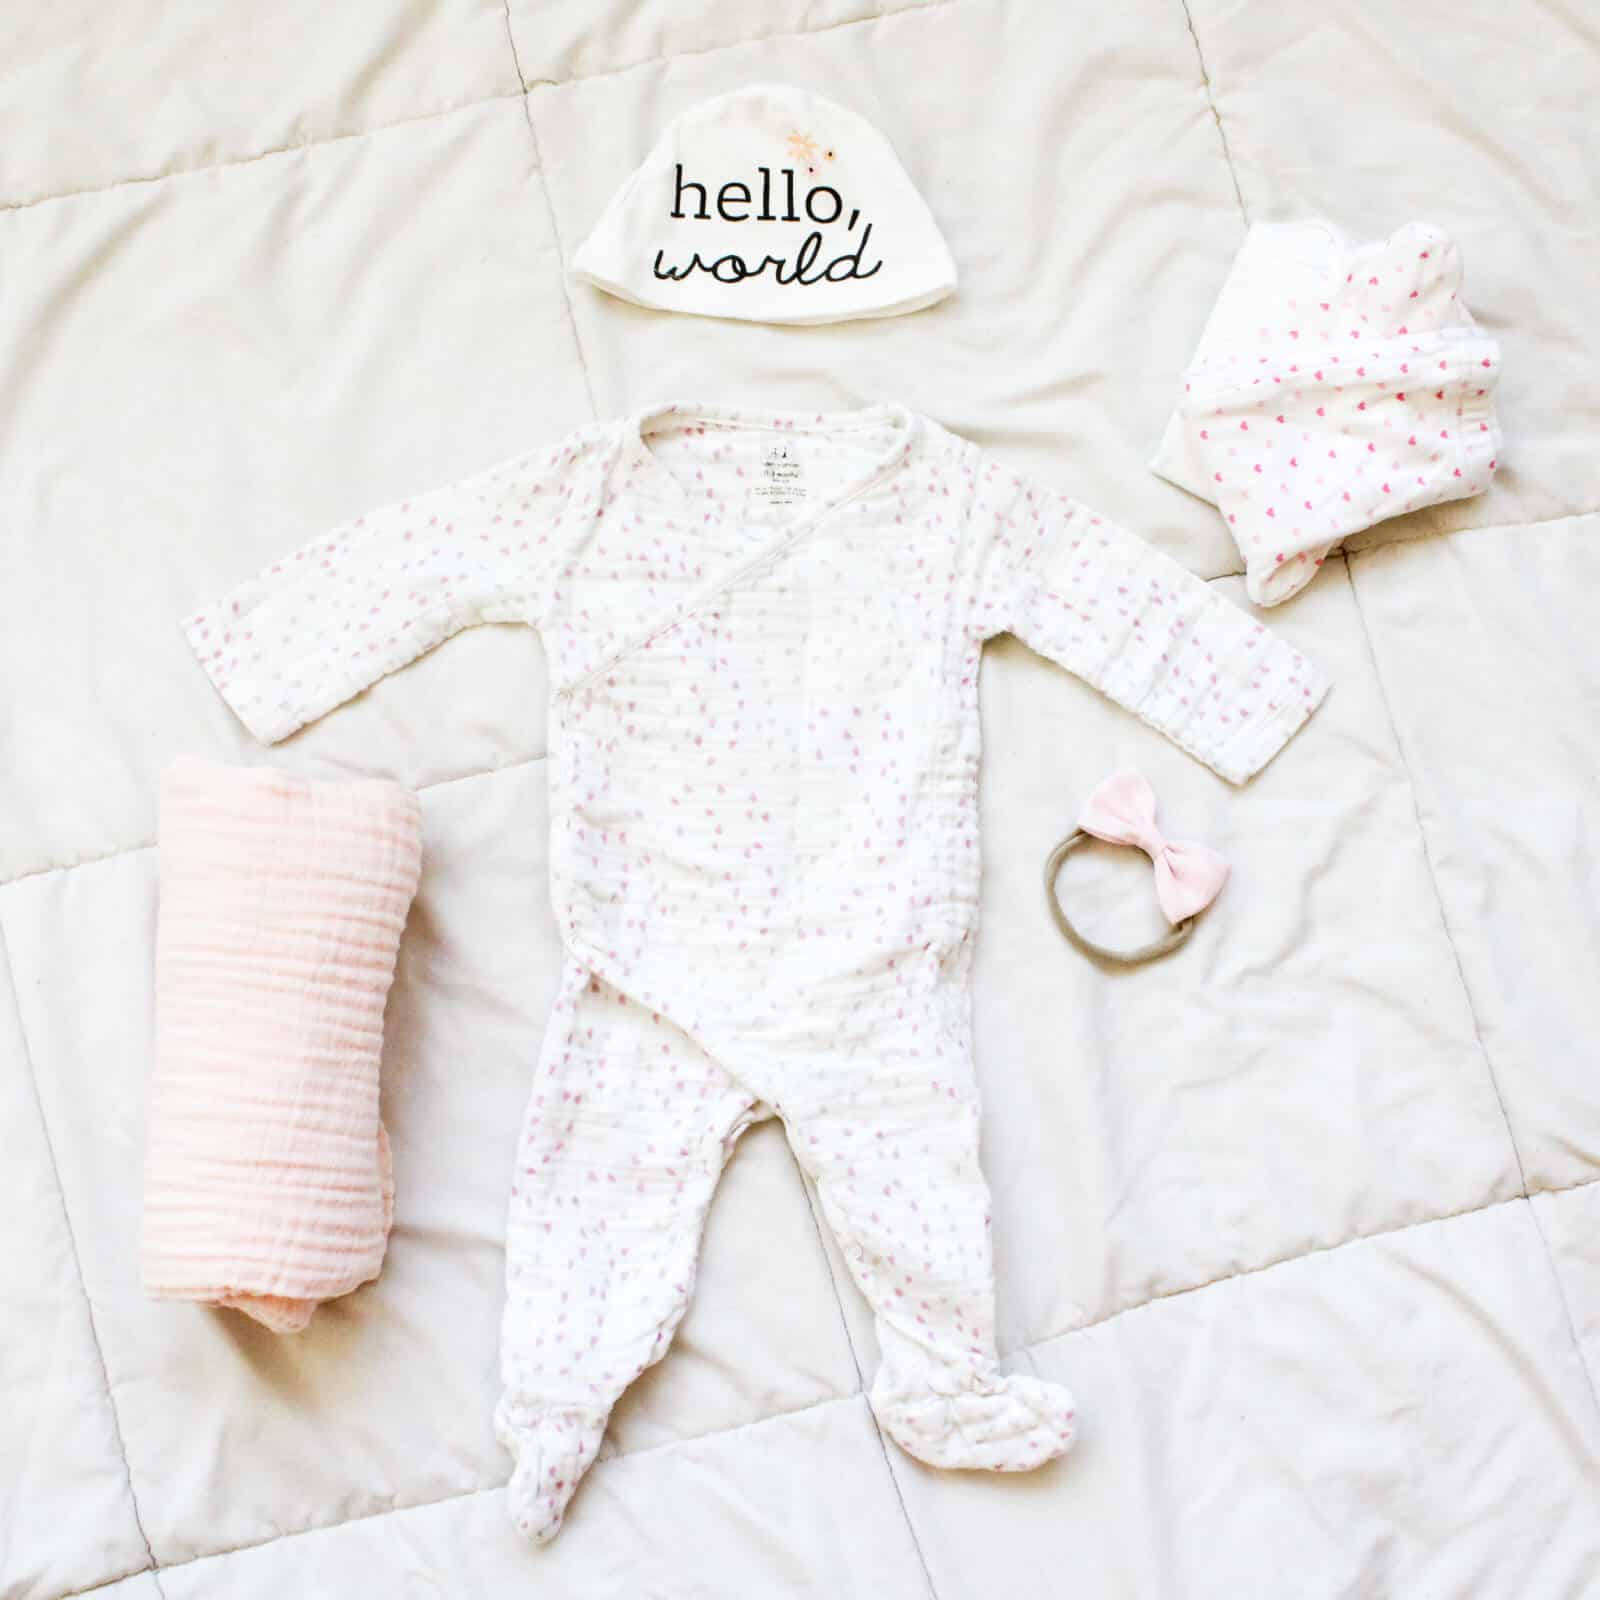 Newborn baby outfit and blanket on bed.